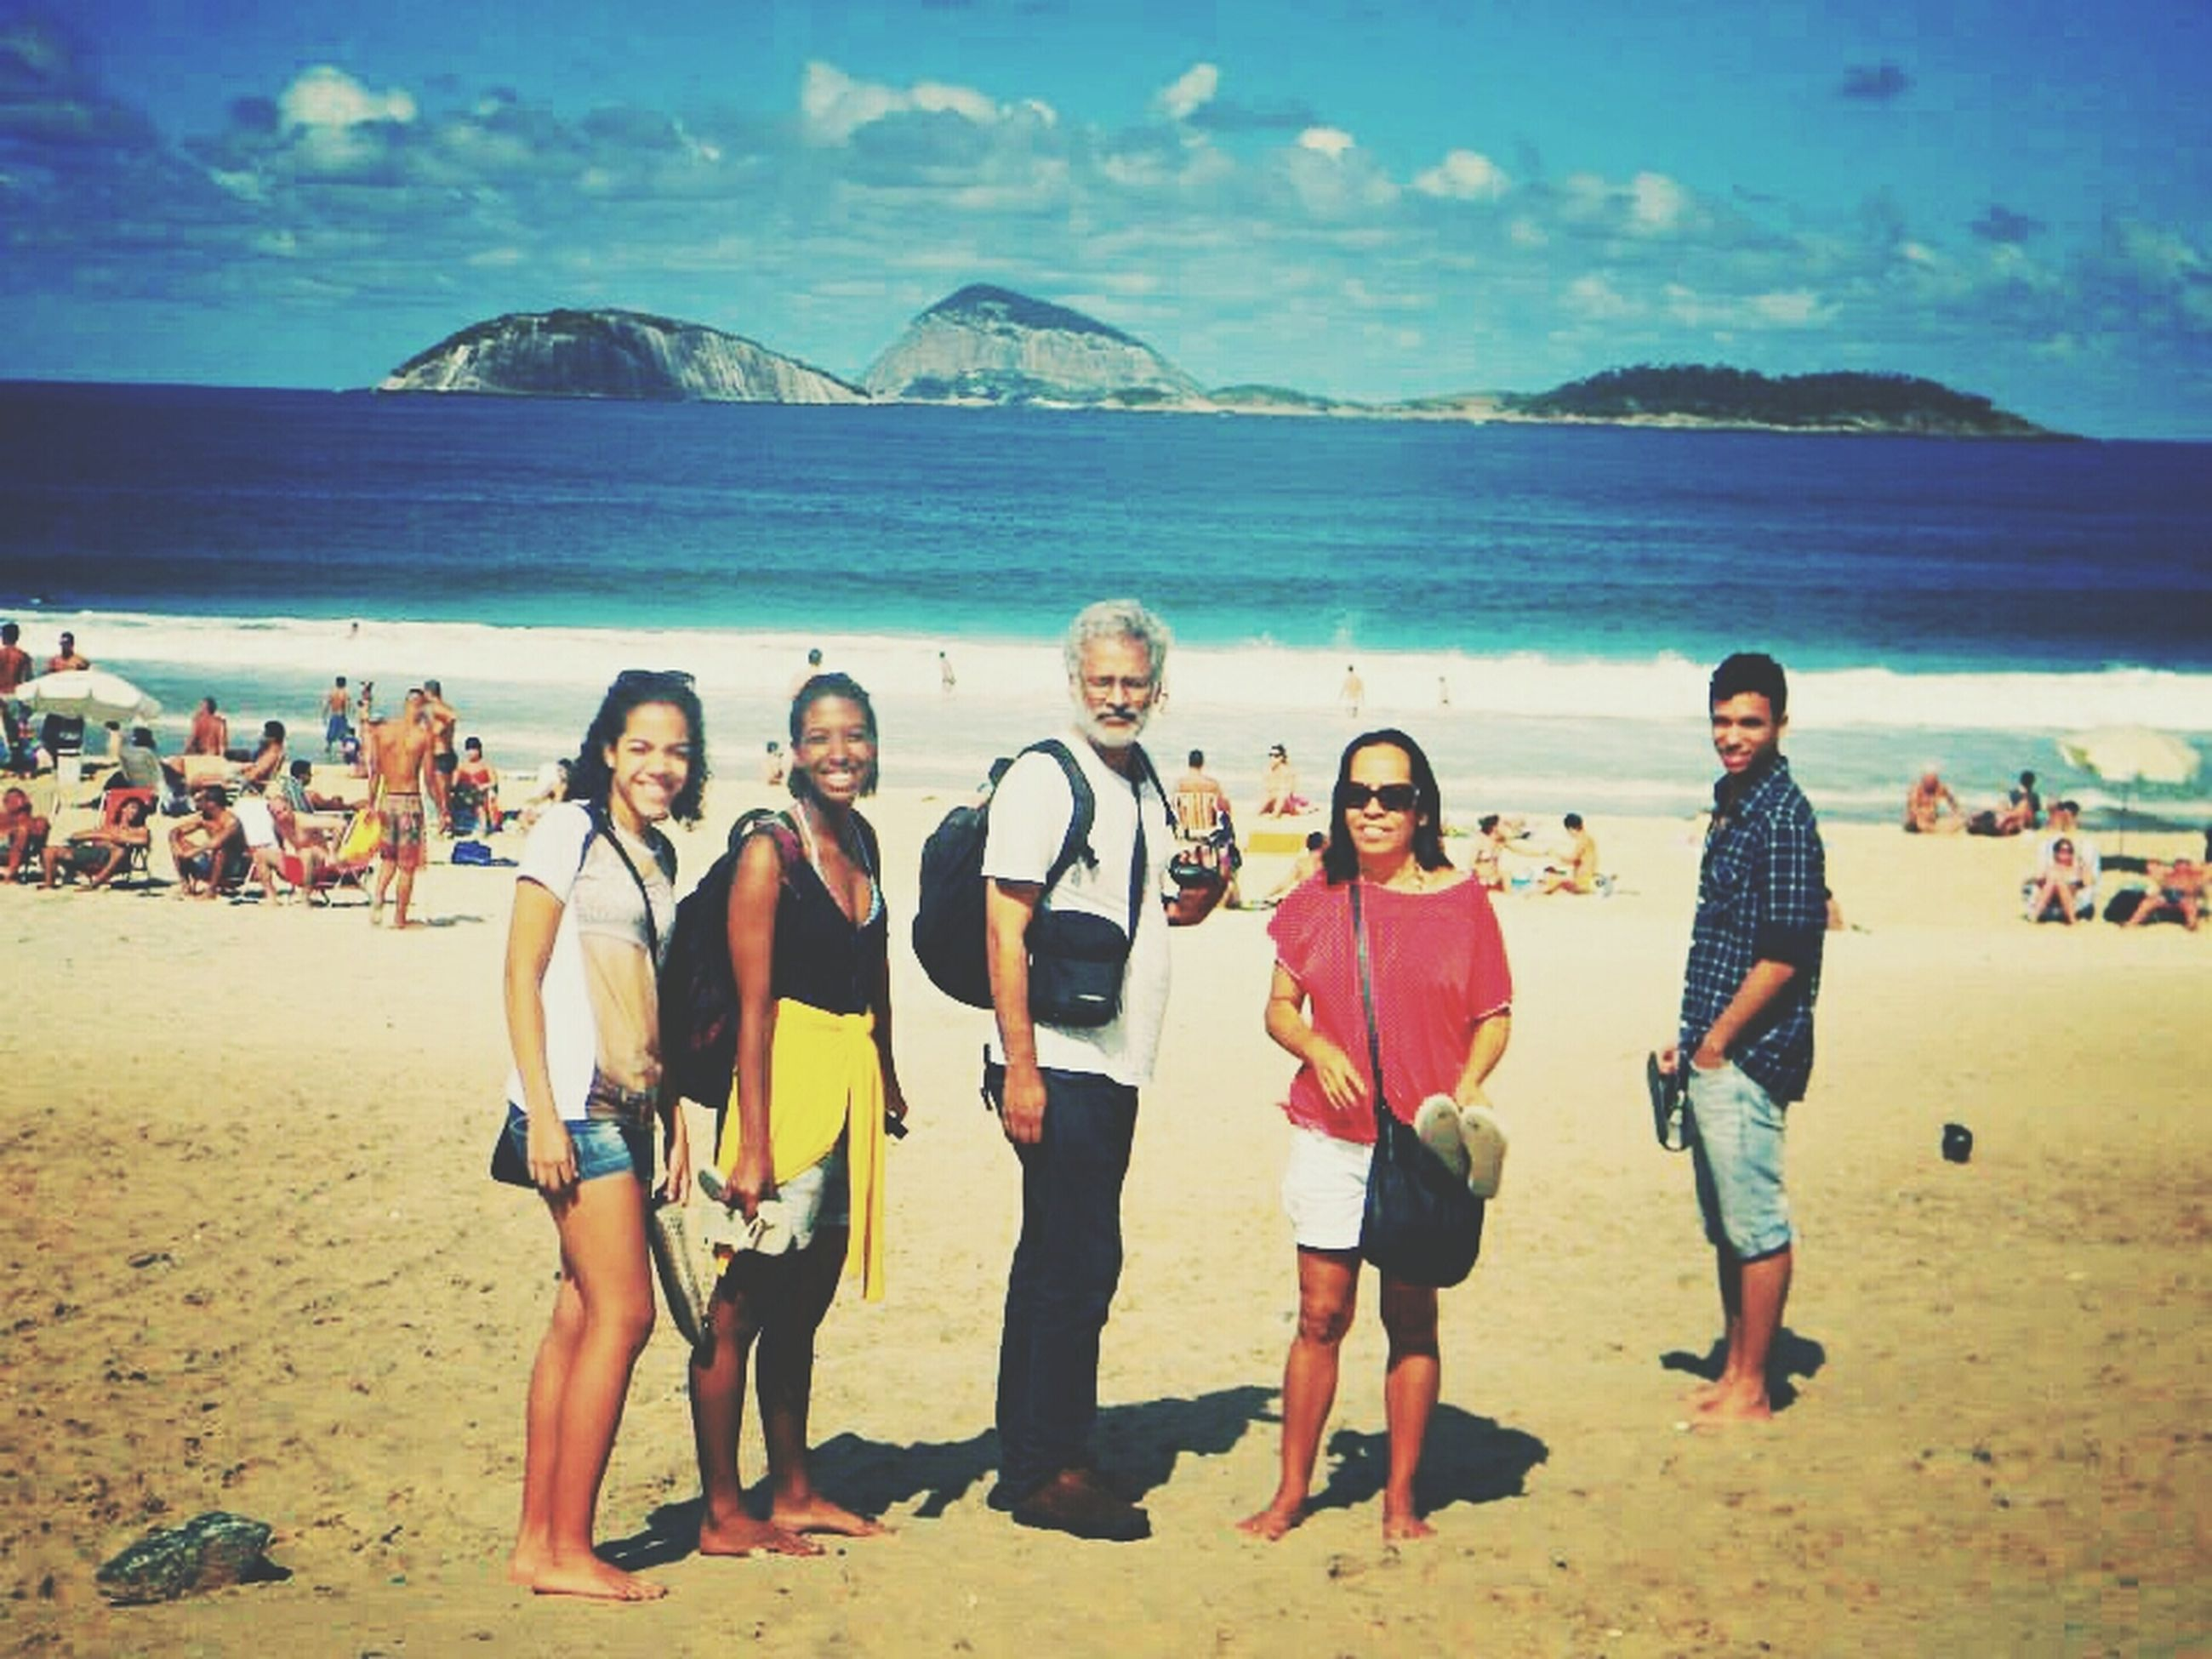 beach, lifestyles, sea, leisure activity, water, vacations, sand, togetherness, enjoyment, shore, sky, casual clothing, full length, happiness, fun, bonding, weekend activities, standing, large group of people